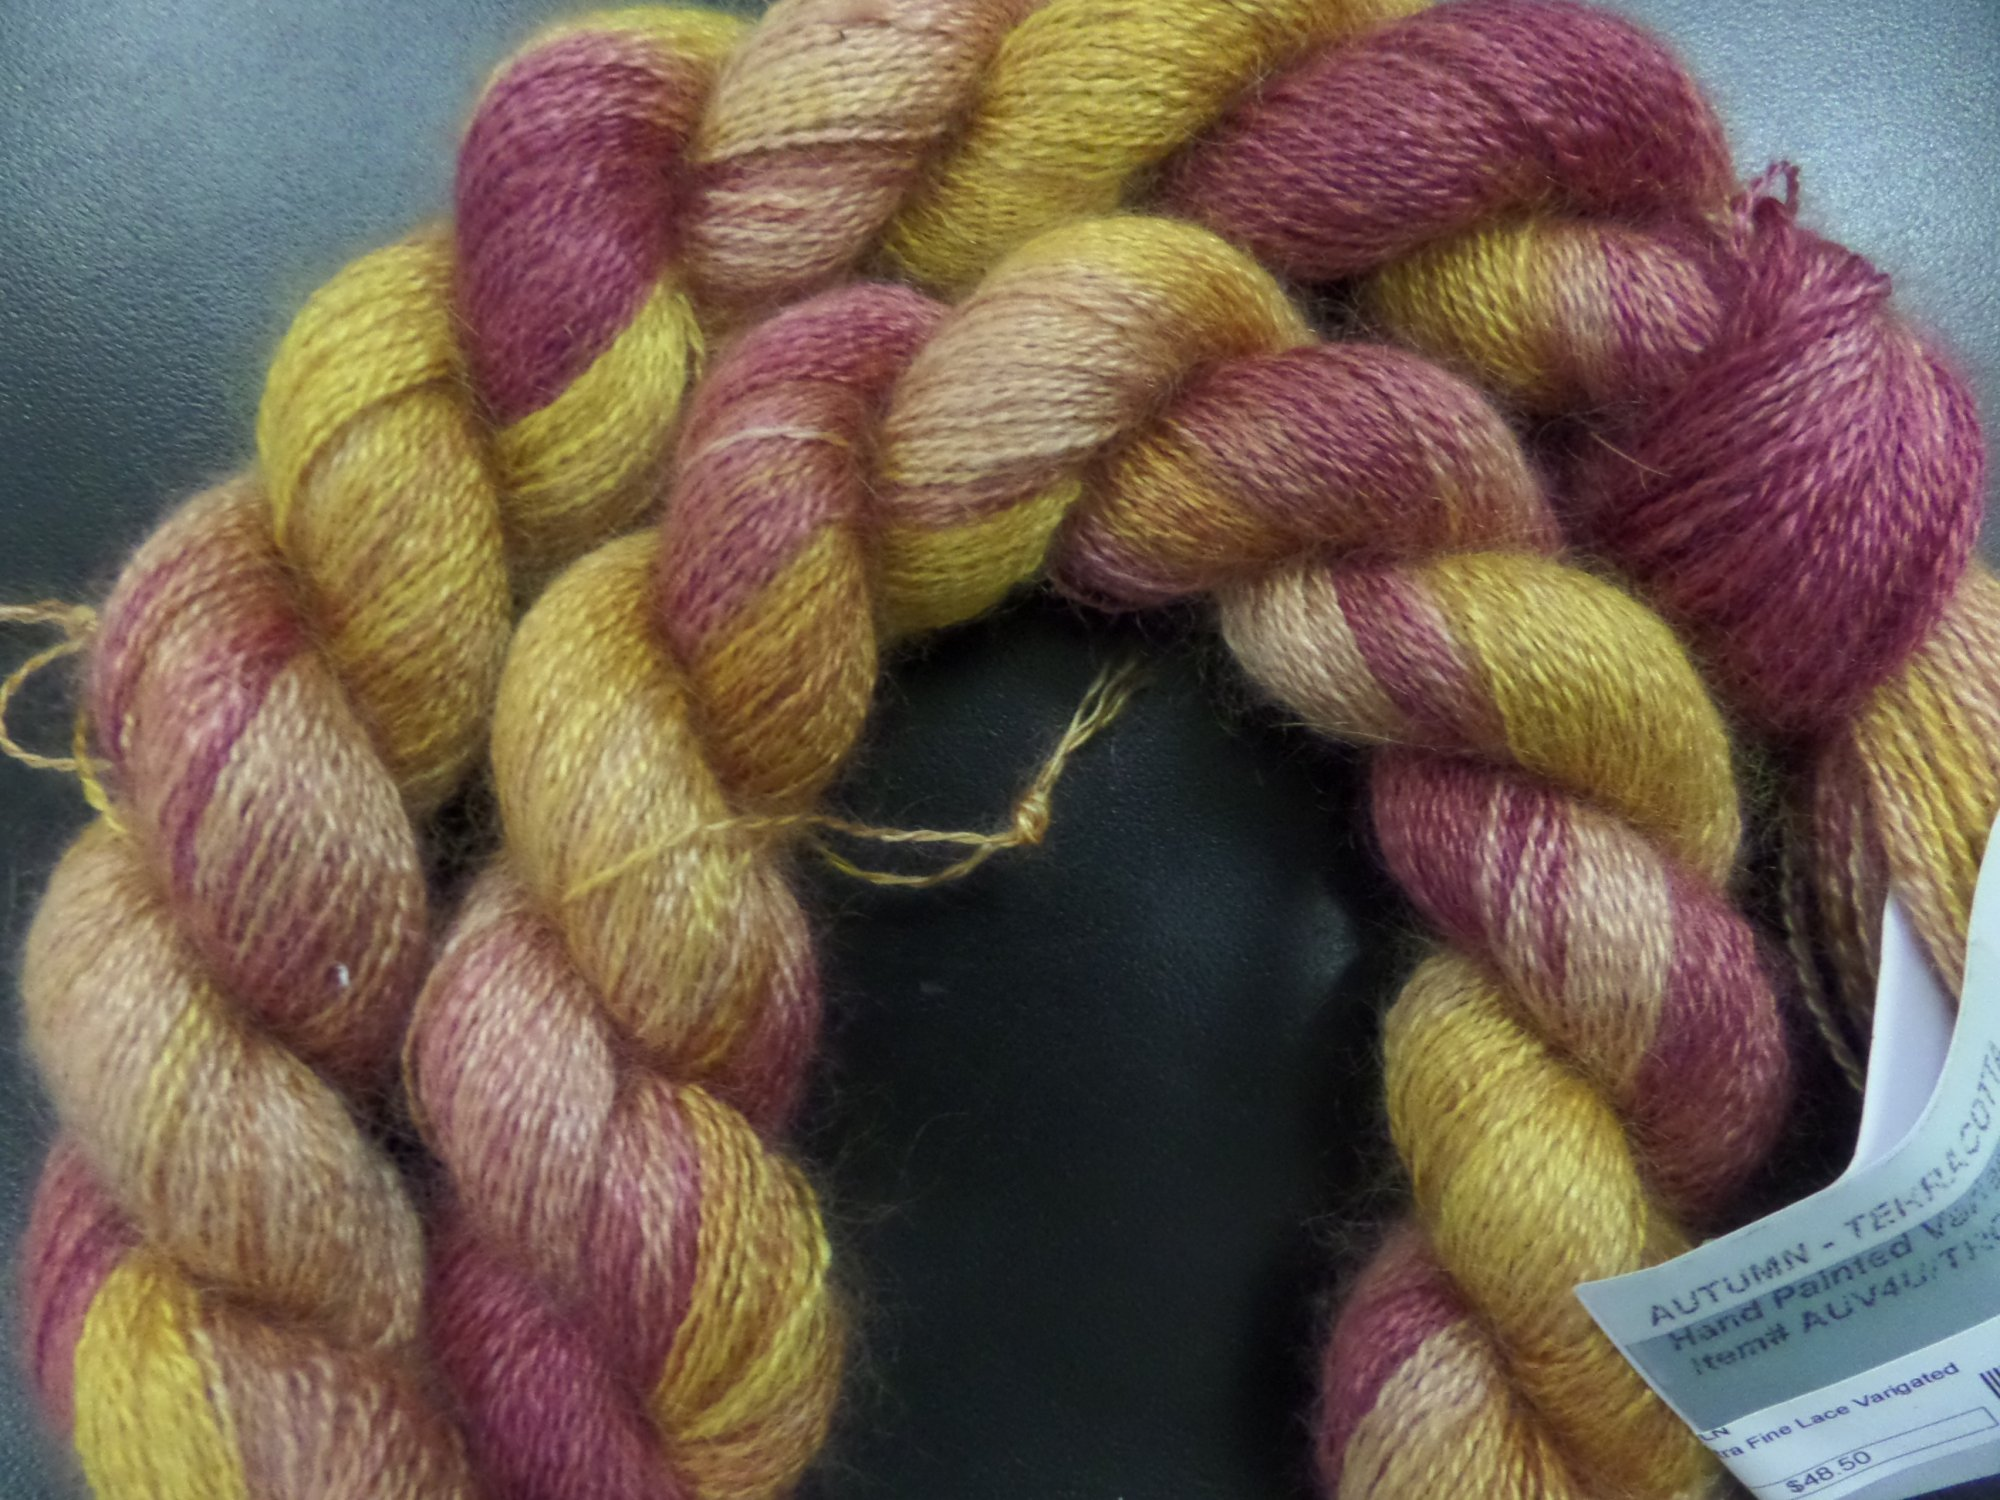 Ultrafine Lace yarn by Colinton - Varigated